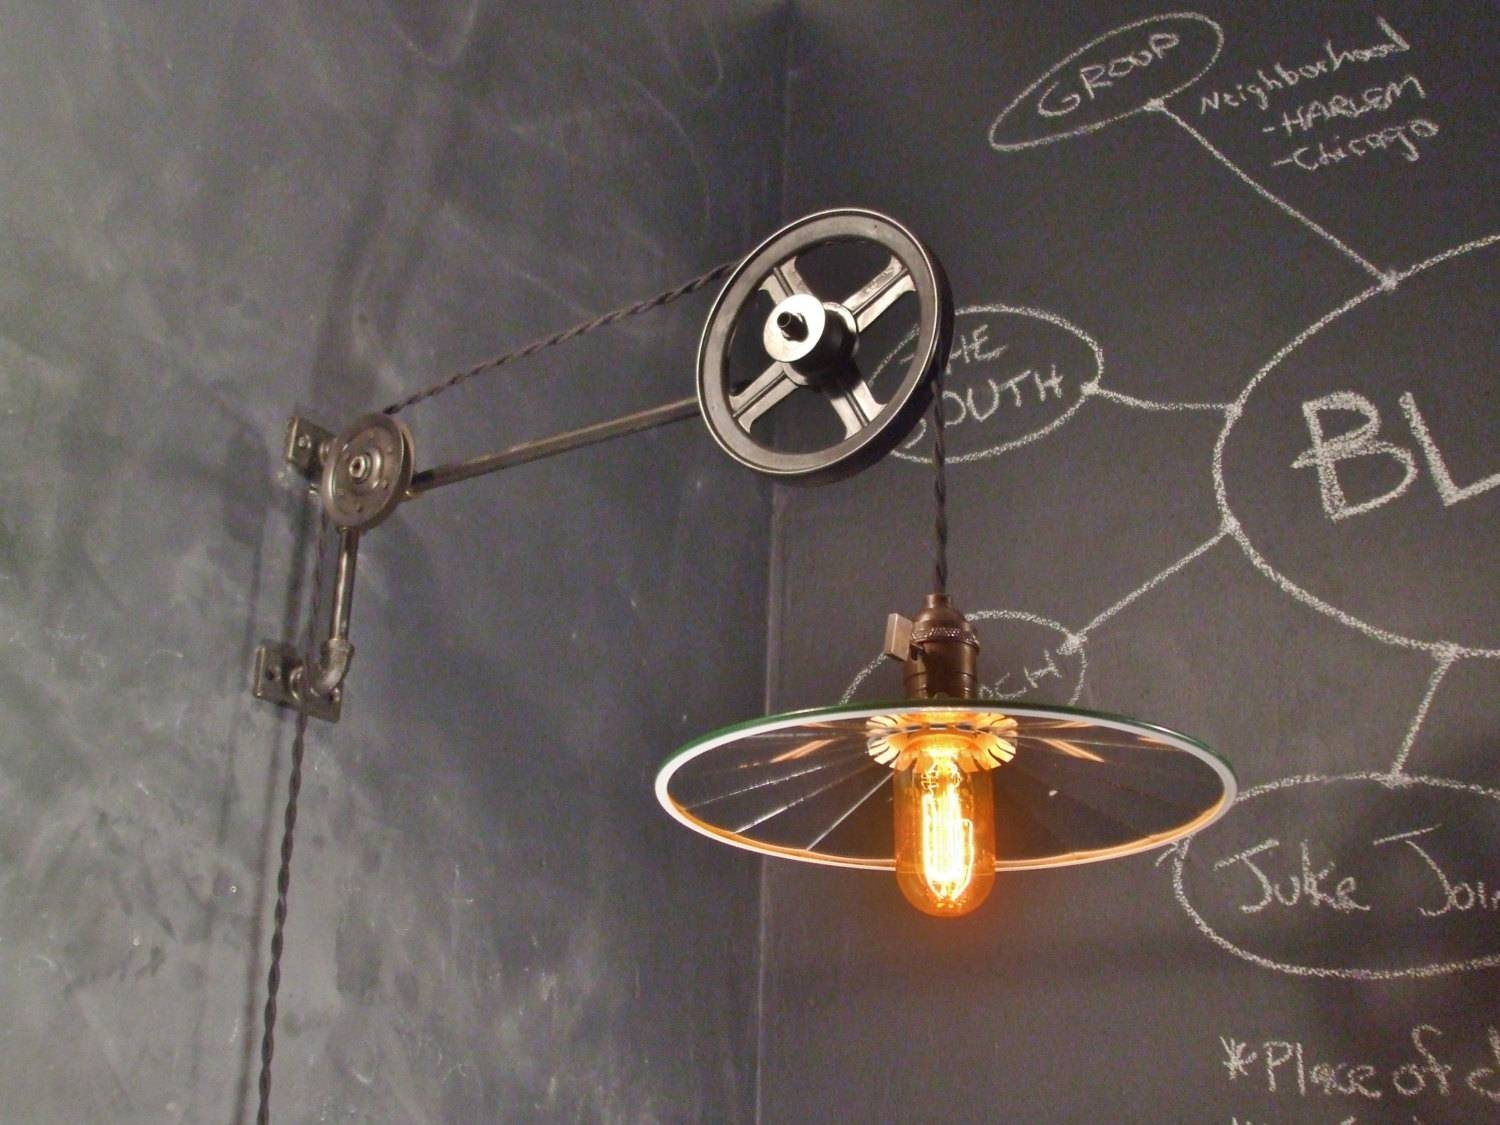 Vintage Industrial Pulley Sconce Mirrored Shade Wall Mount within Pulley Lights Fixture (Image 15 of 15)